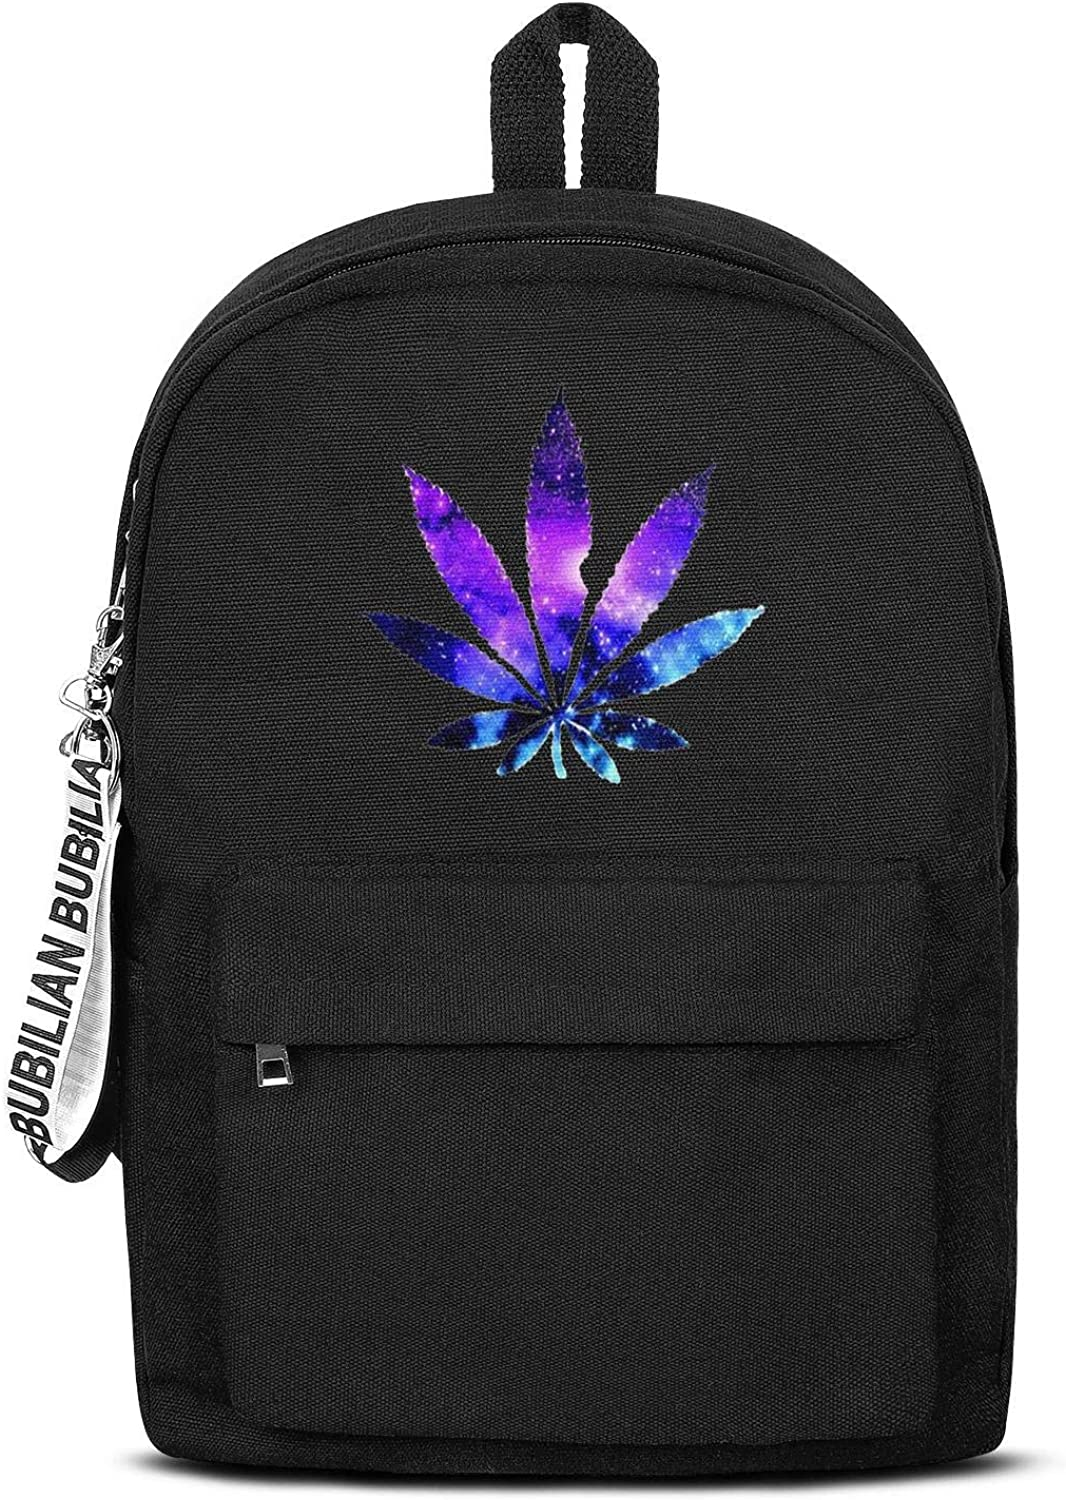 Marijuana Weed Pot Plant Manager Laptop Backpack Unisex Water Resistant Canvas Rucksack Grocery for Men Women or Kids